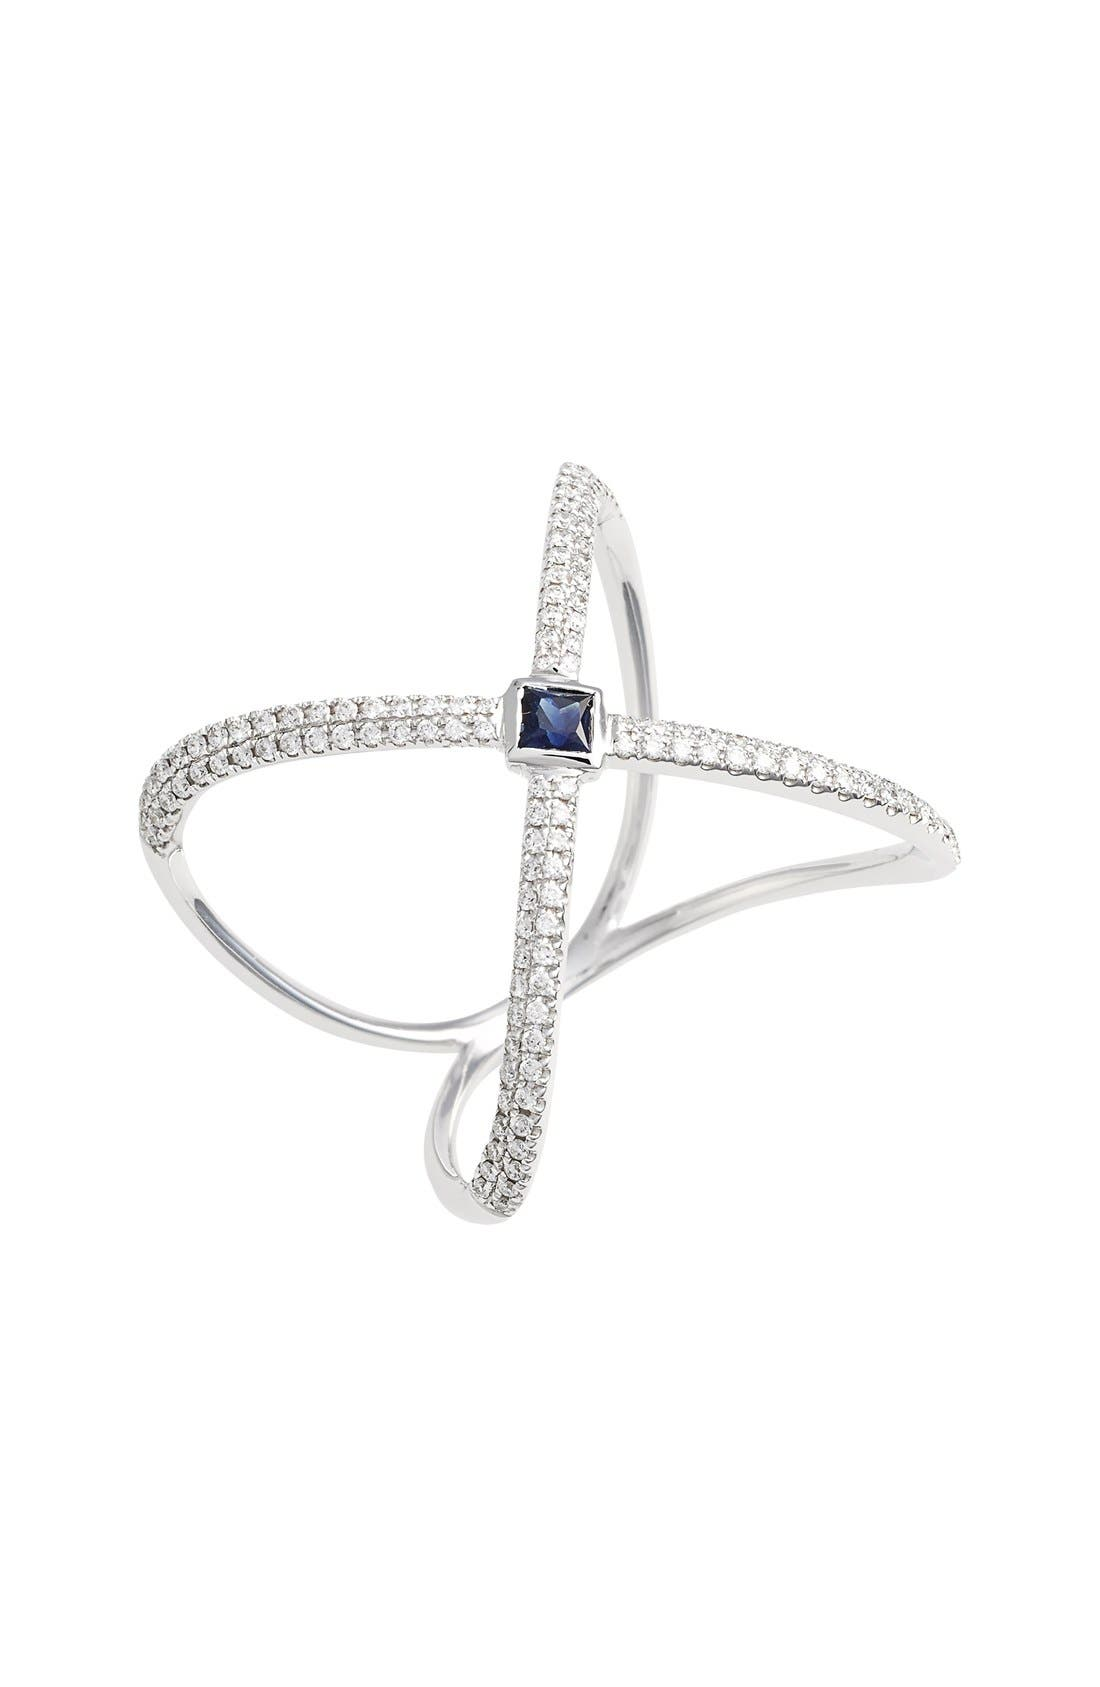 Alternate Image 1 Selected - Bony Levy Diamond & Gem Crossover Ring (Nordstrom Exclusive)